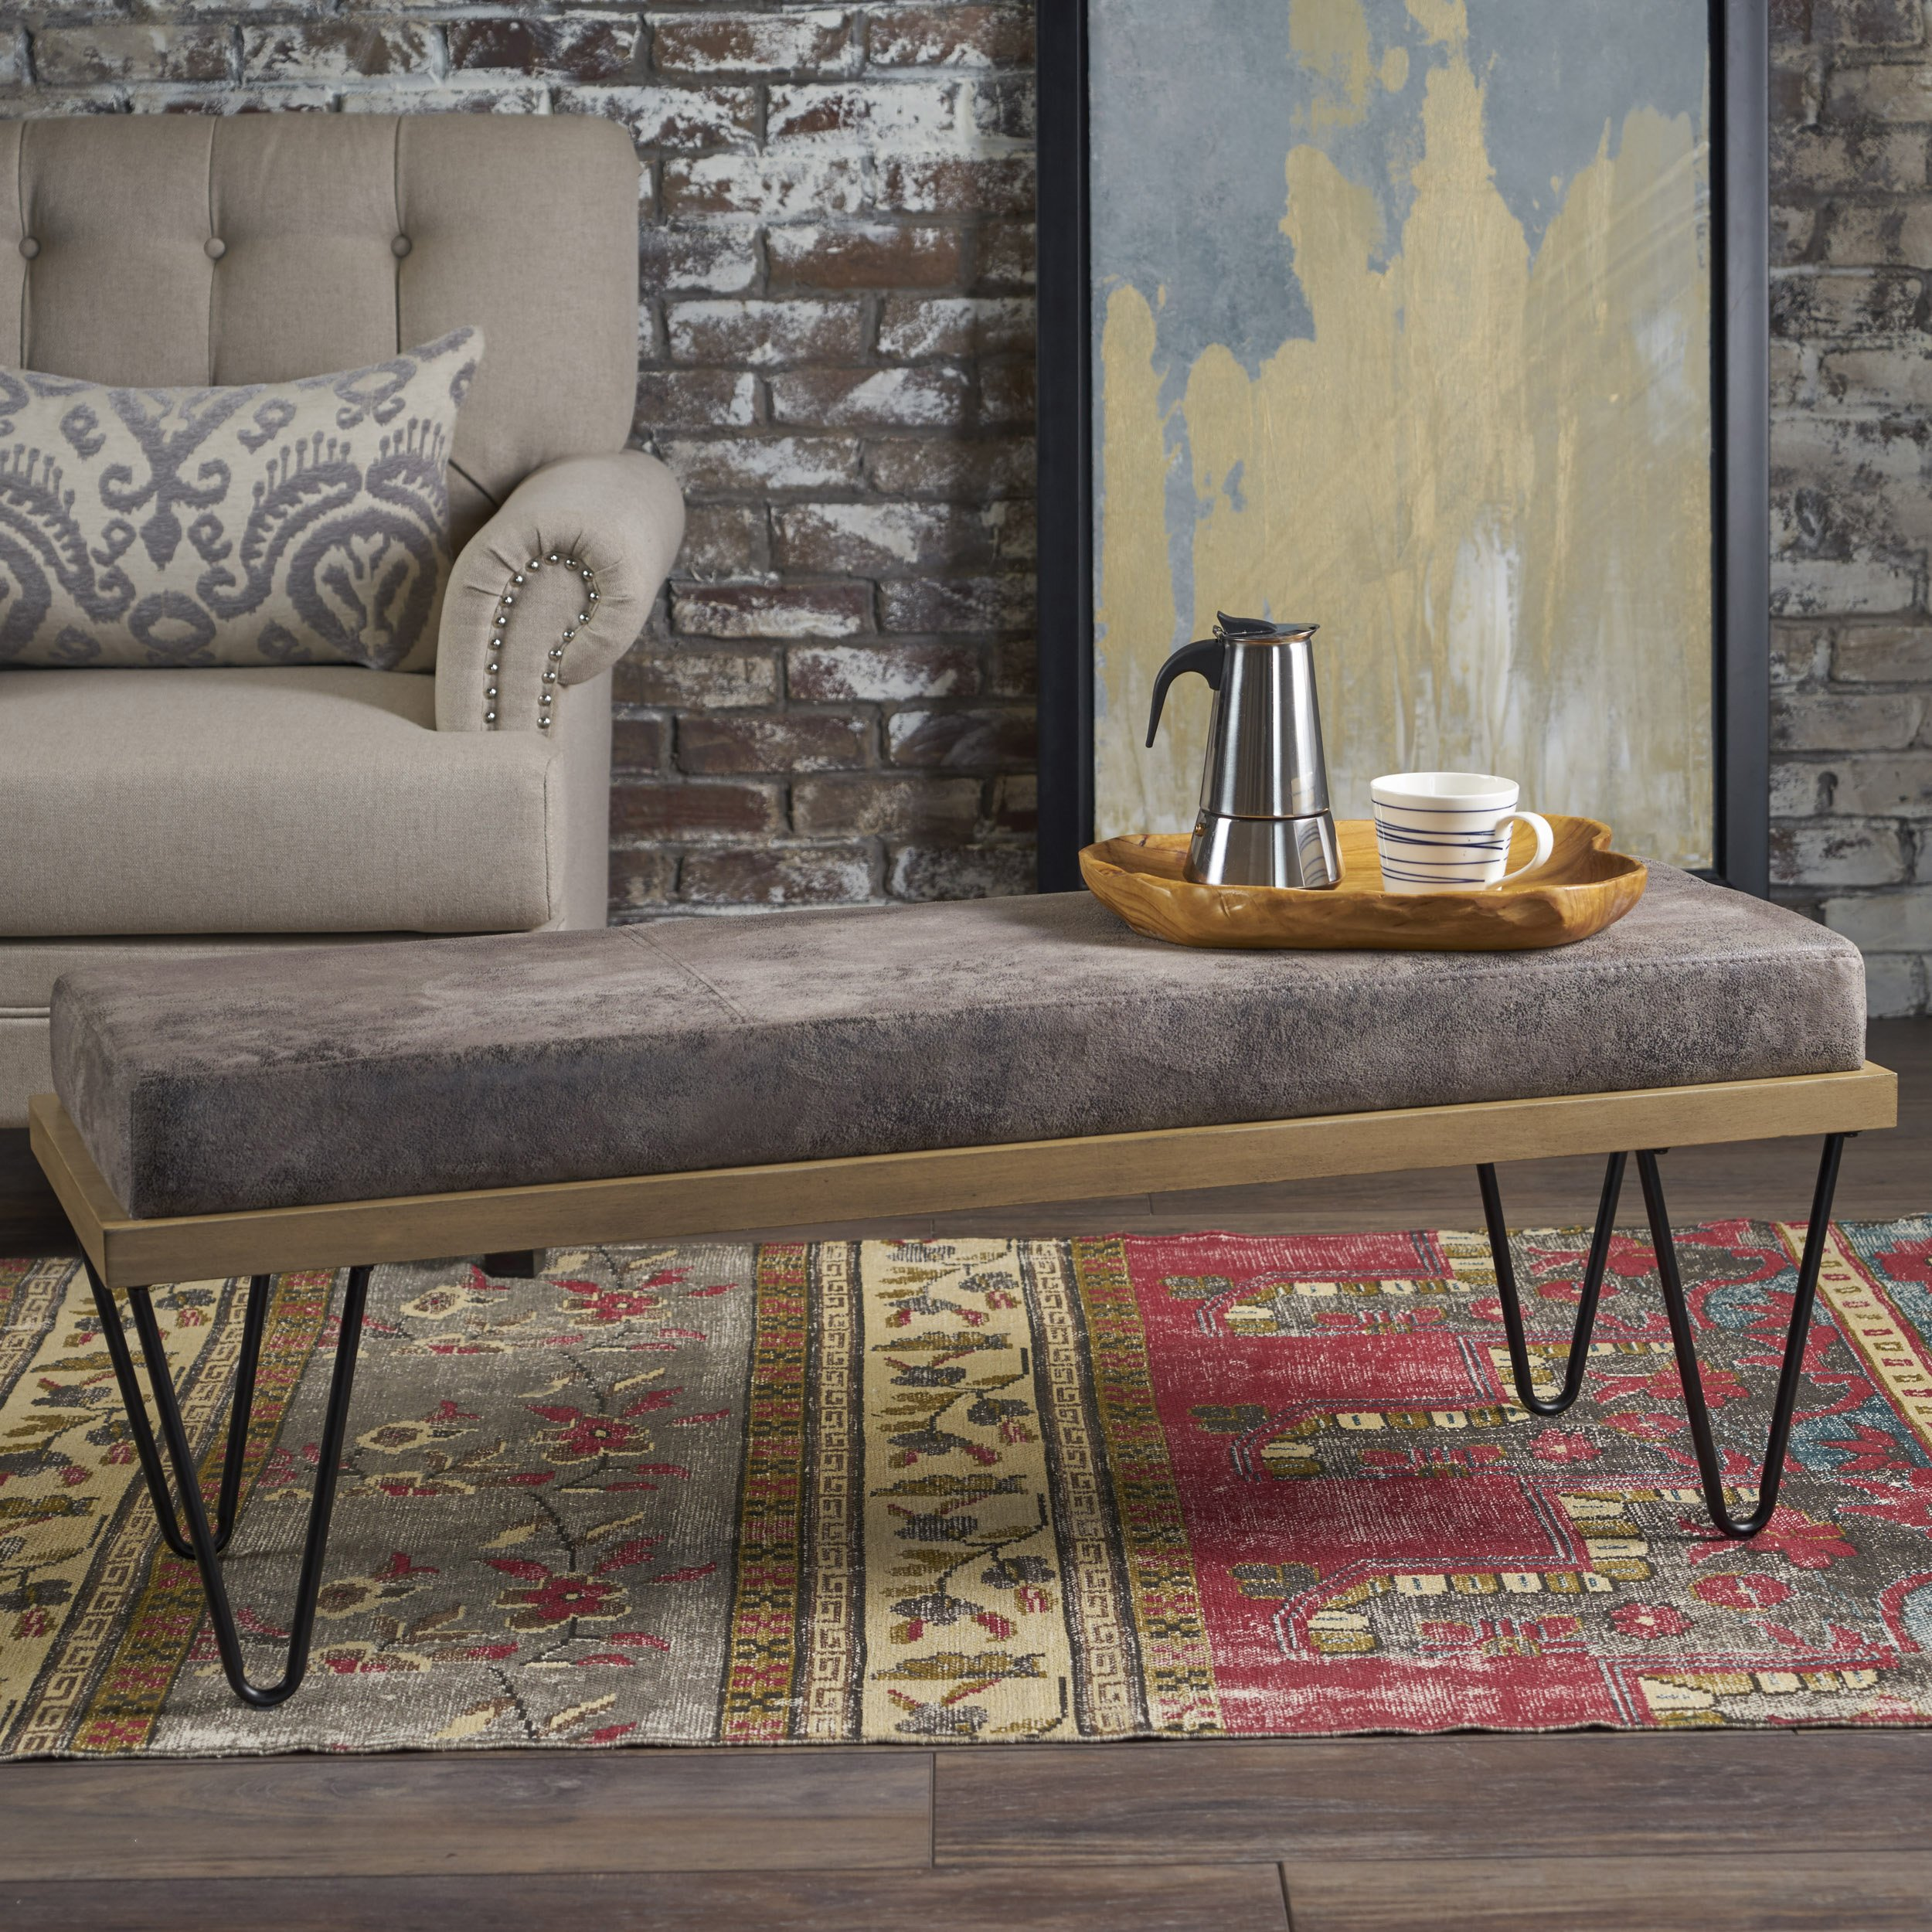 Great Deal Furniture 302218 Elaina Bench | Perfect for Dining Table or Entry Way | Danish, Minimal, Mid Century Modern Design | Hairpin Leg | Fabric in Greyish Brown, Matte Black by Great Deal Furniture